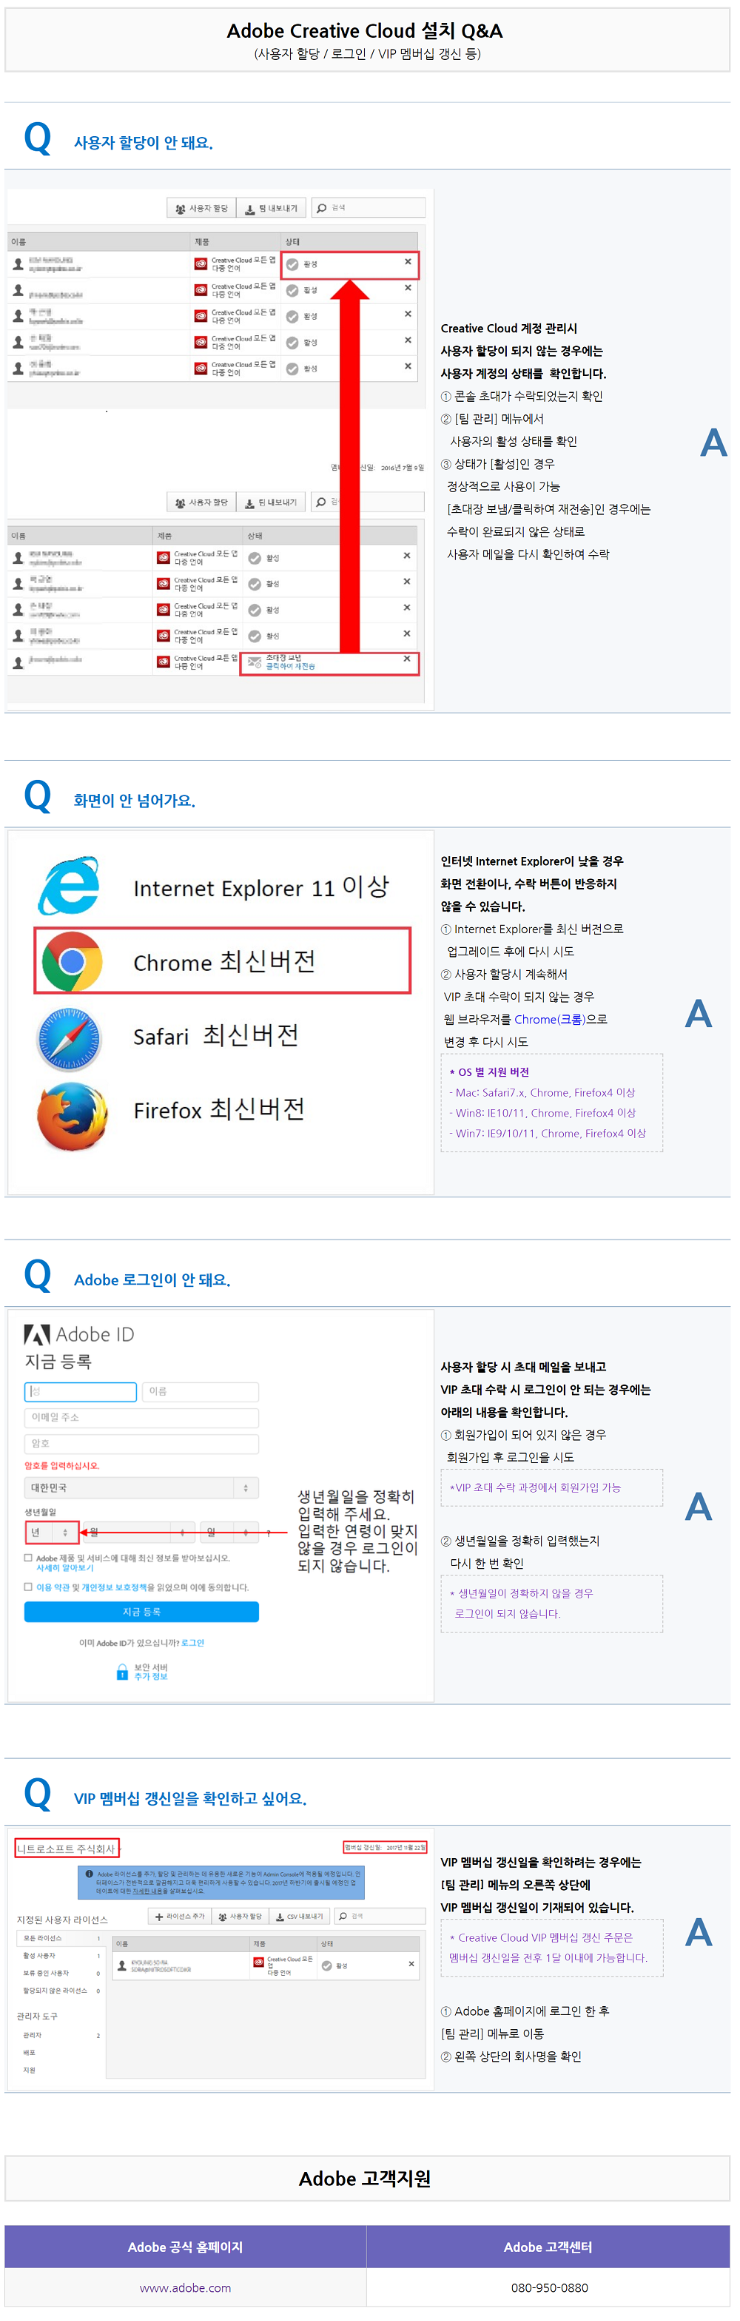 Adobe Creative Cloud 설치 Q&A.png